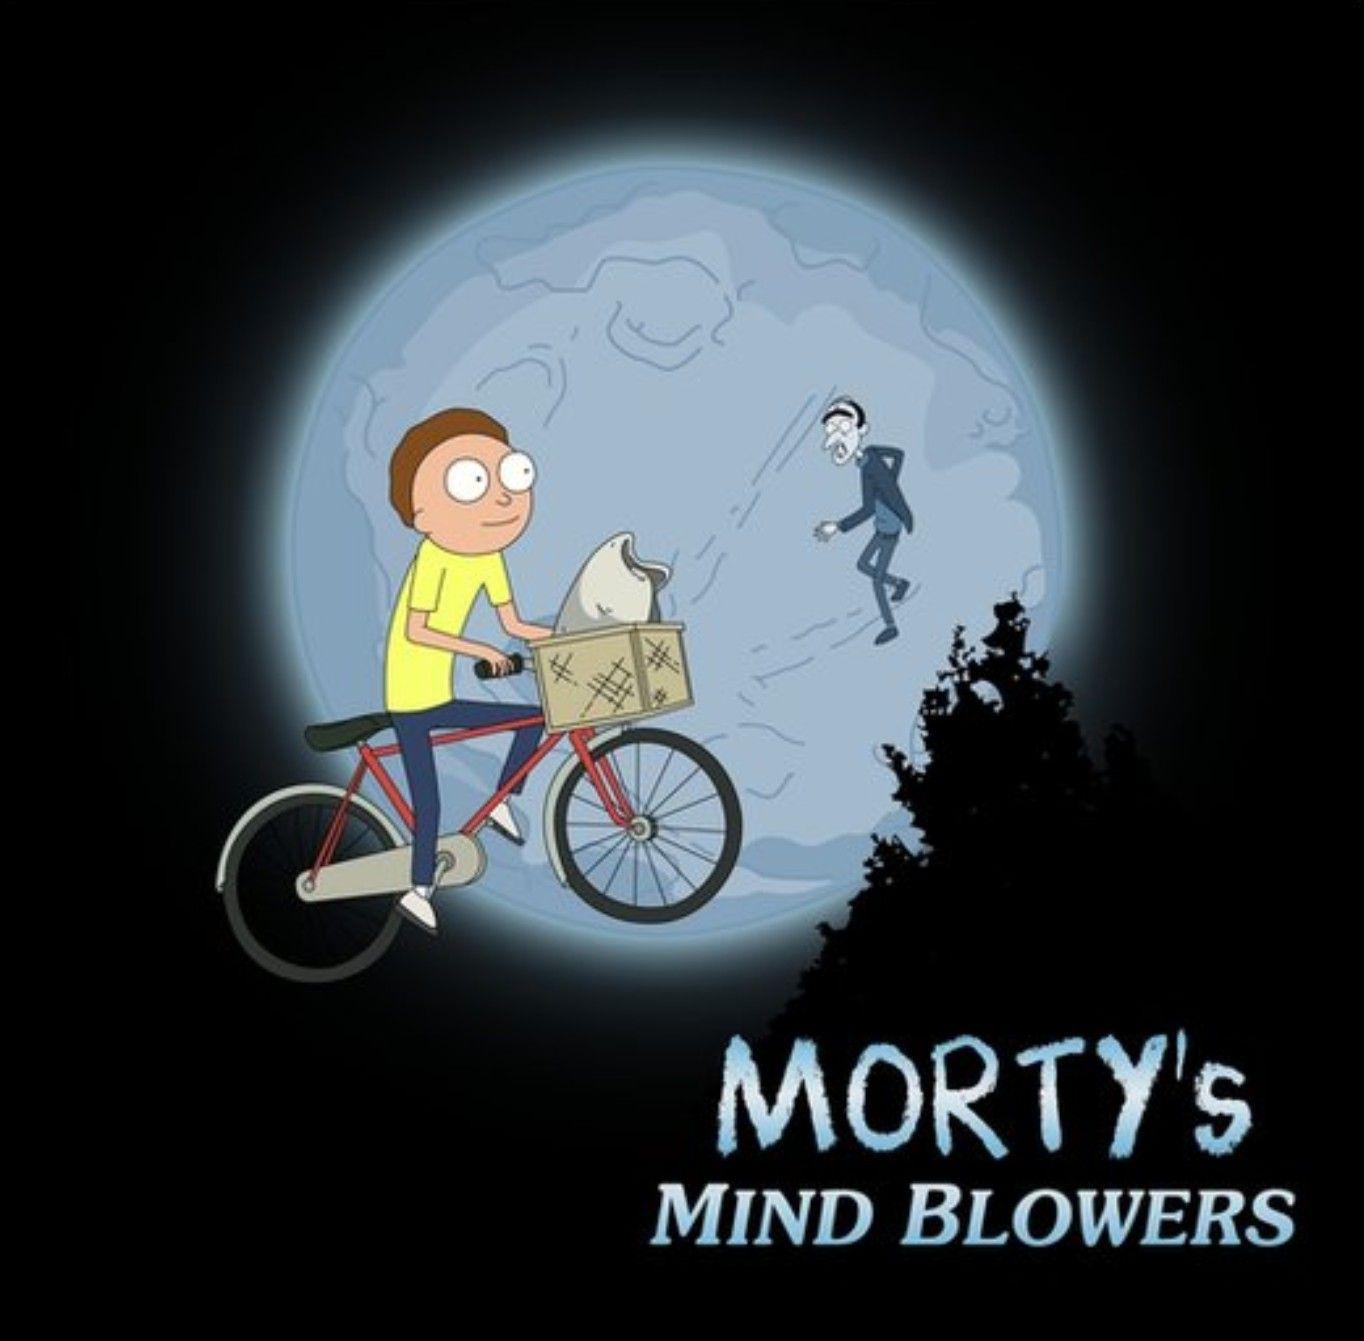 Rick And Morty Morty S Mind Blowers R Rick And Morty Morty